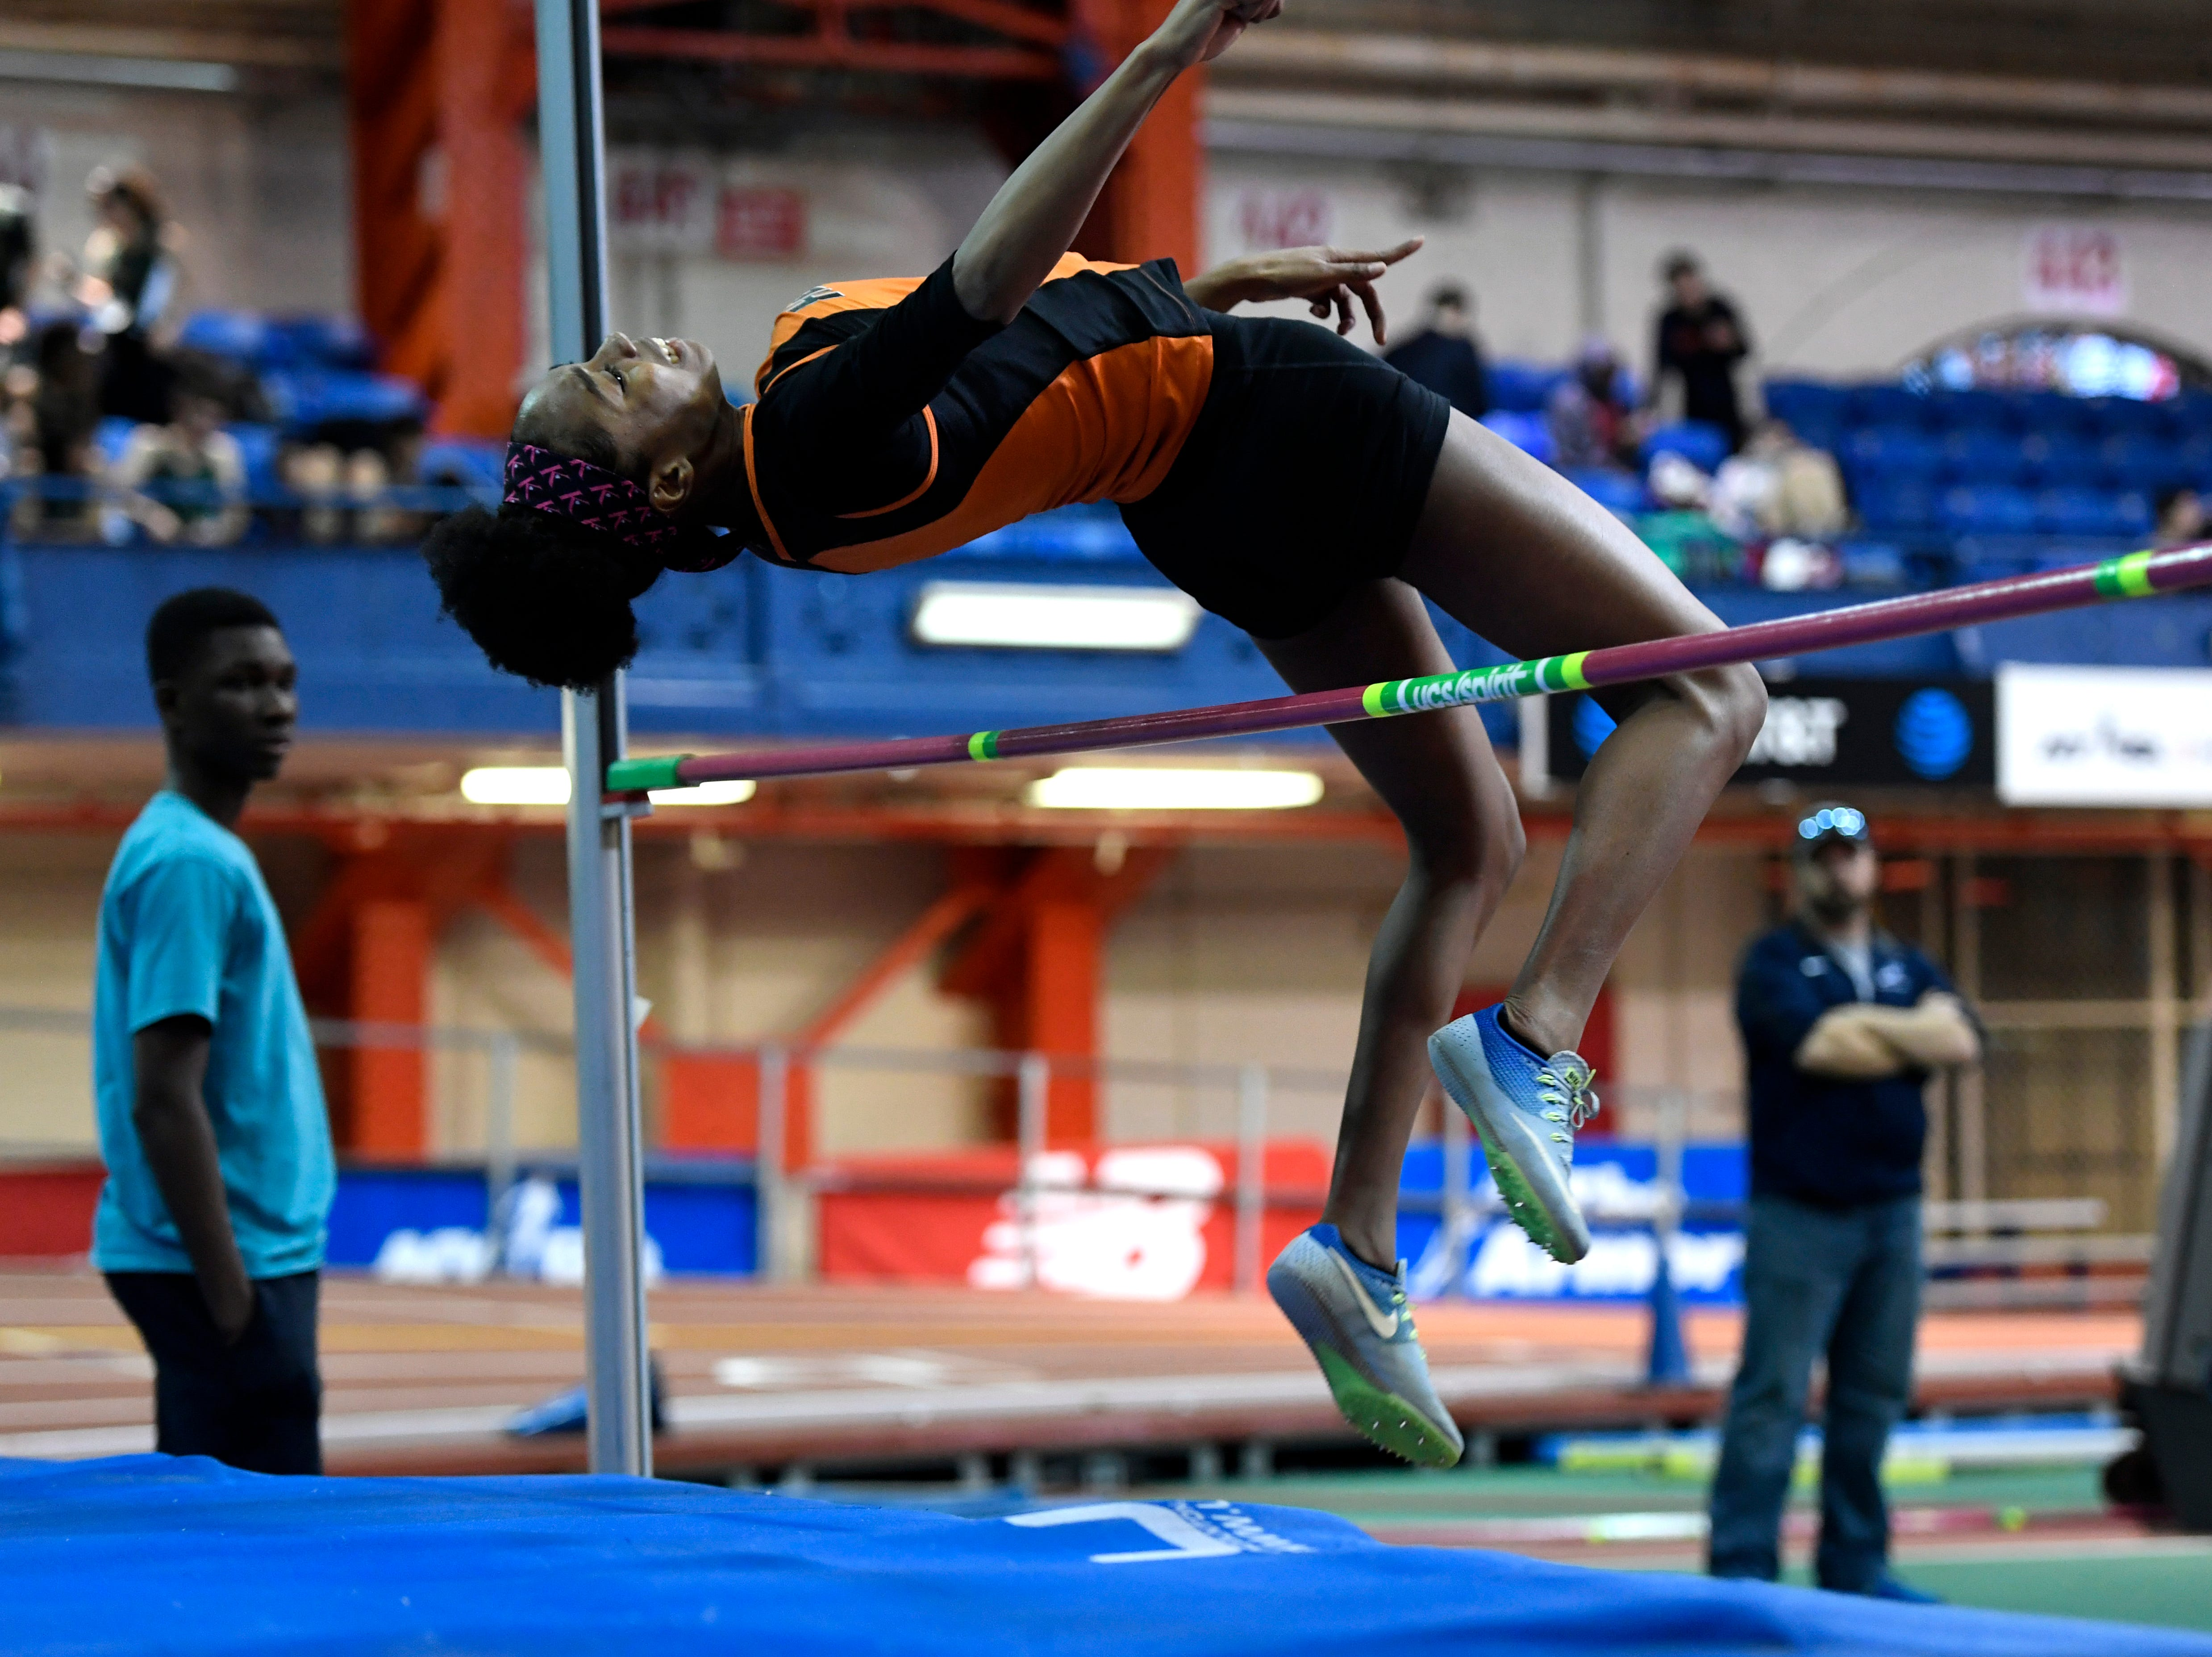 Taila Ferguson of Hasbrouck Heights clears 5-feet-2-inches during the high jump in the NJIC track meet at the Armory Track on Monday, Jan. 7, 2019, in New York.